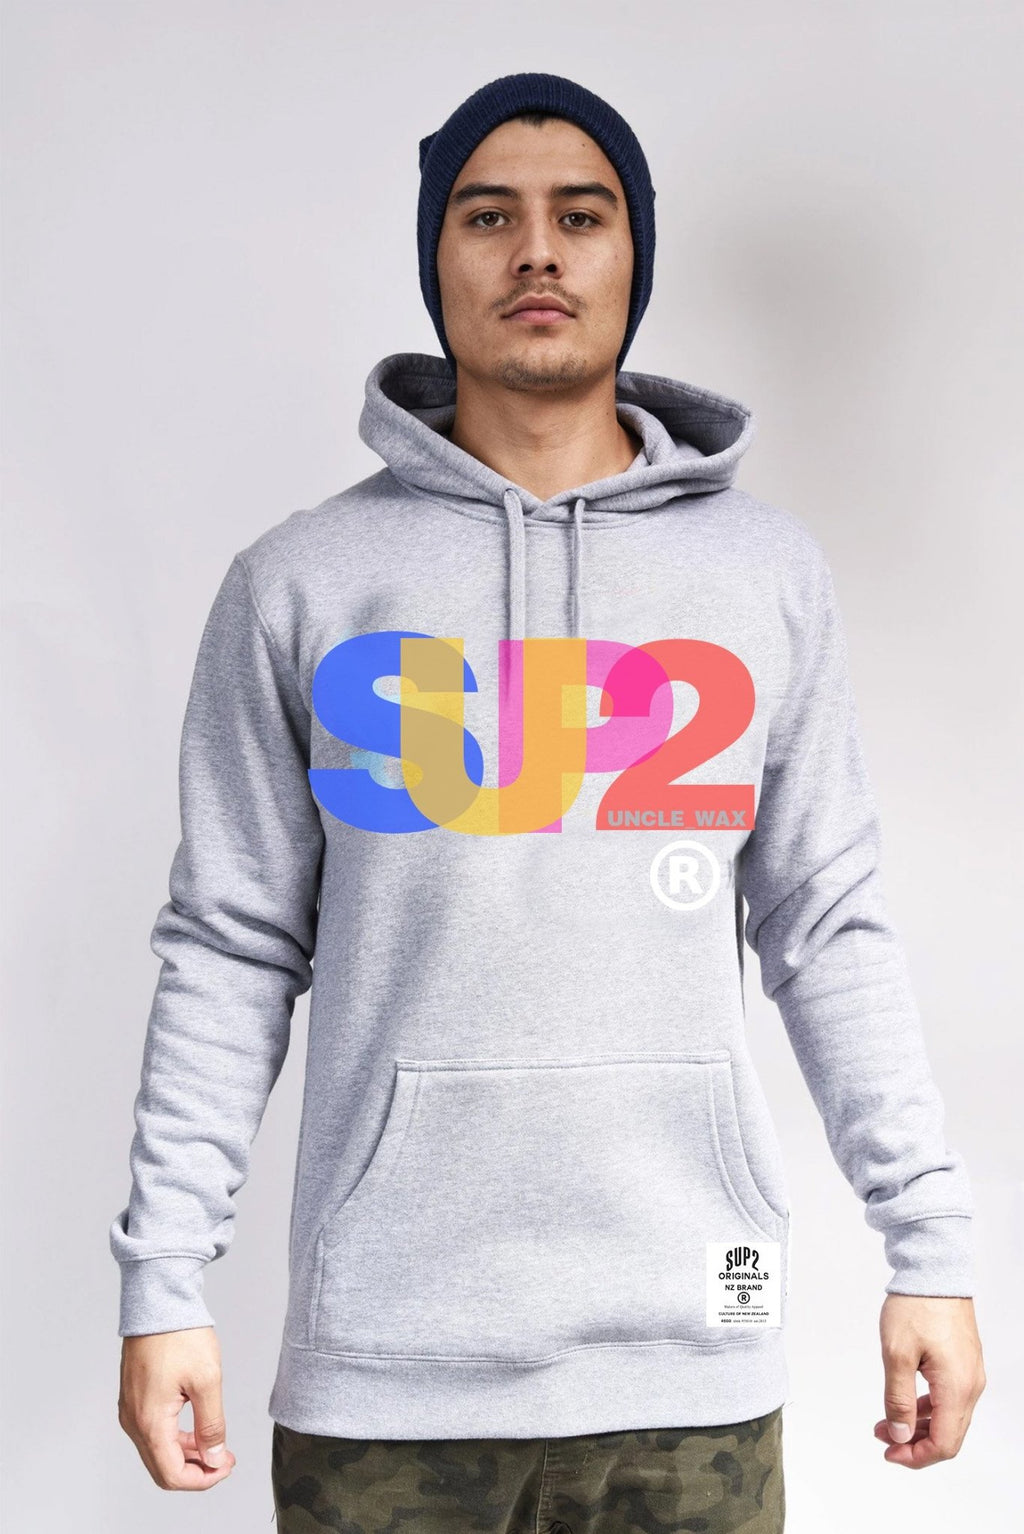 SUP2 'House Party' 350gm Hoodie - SUP2